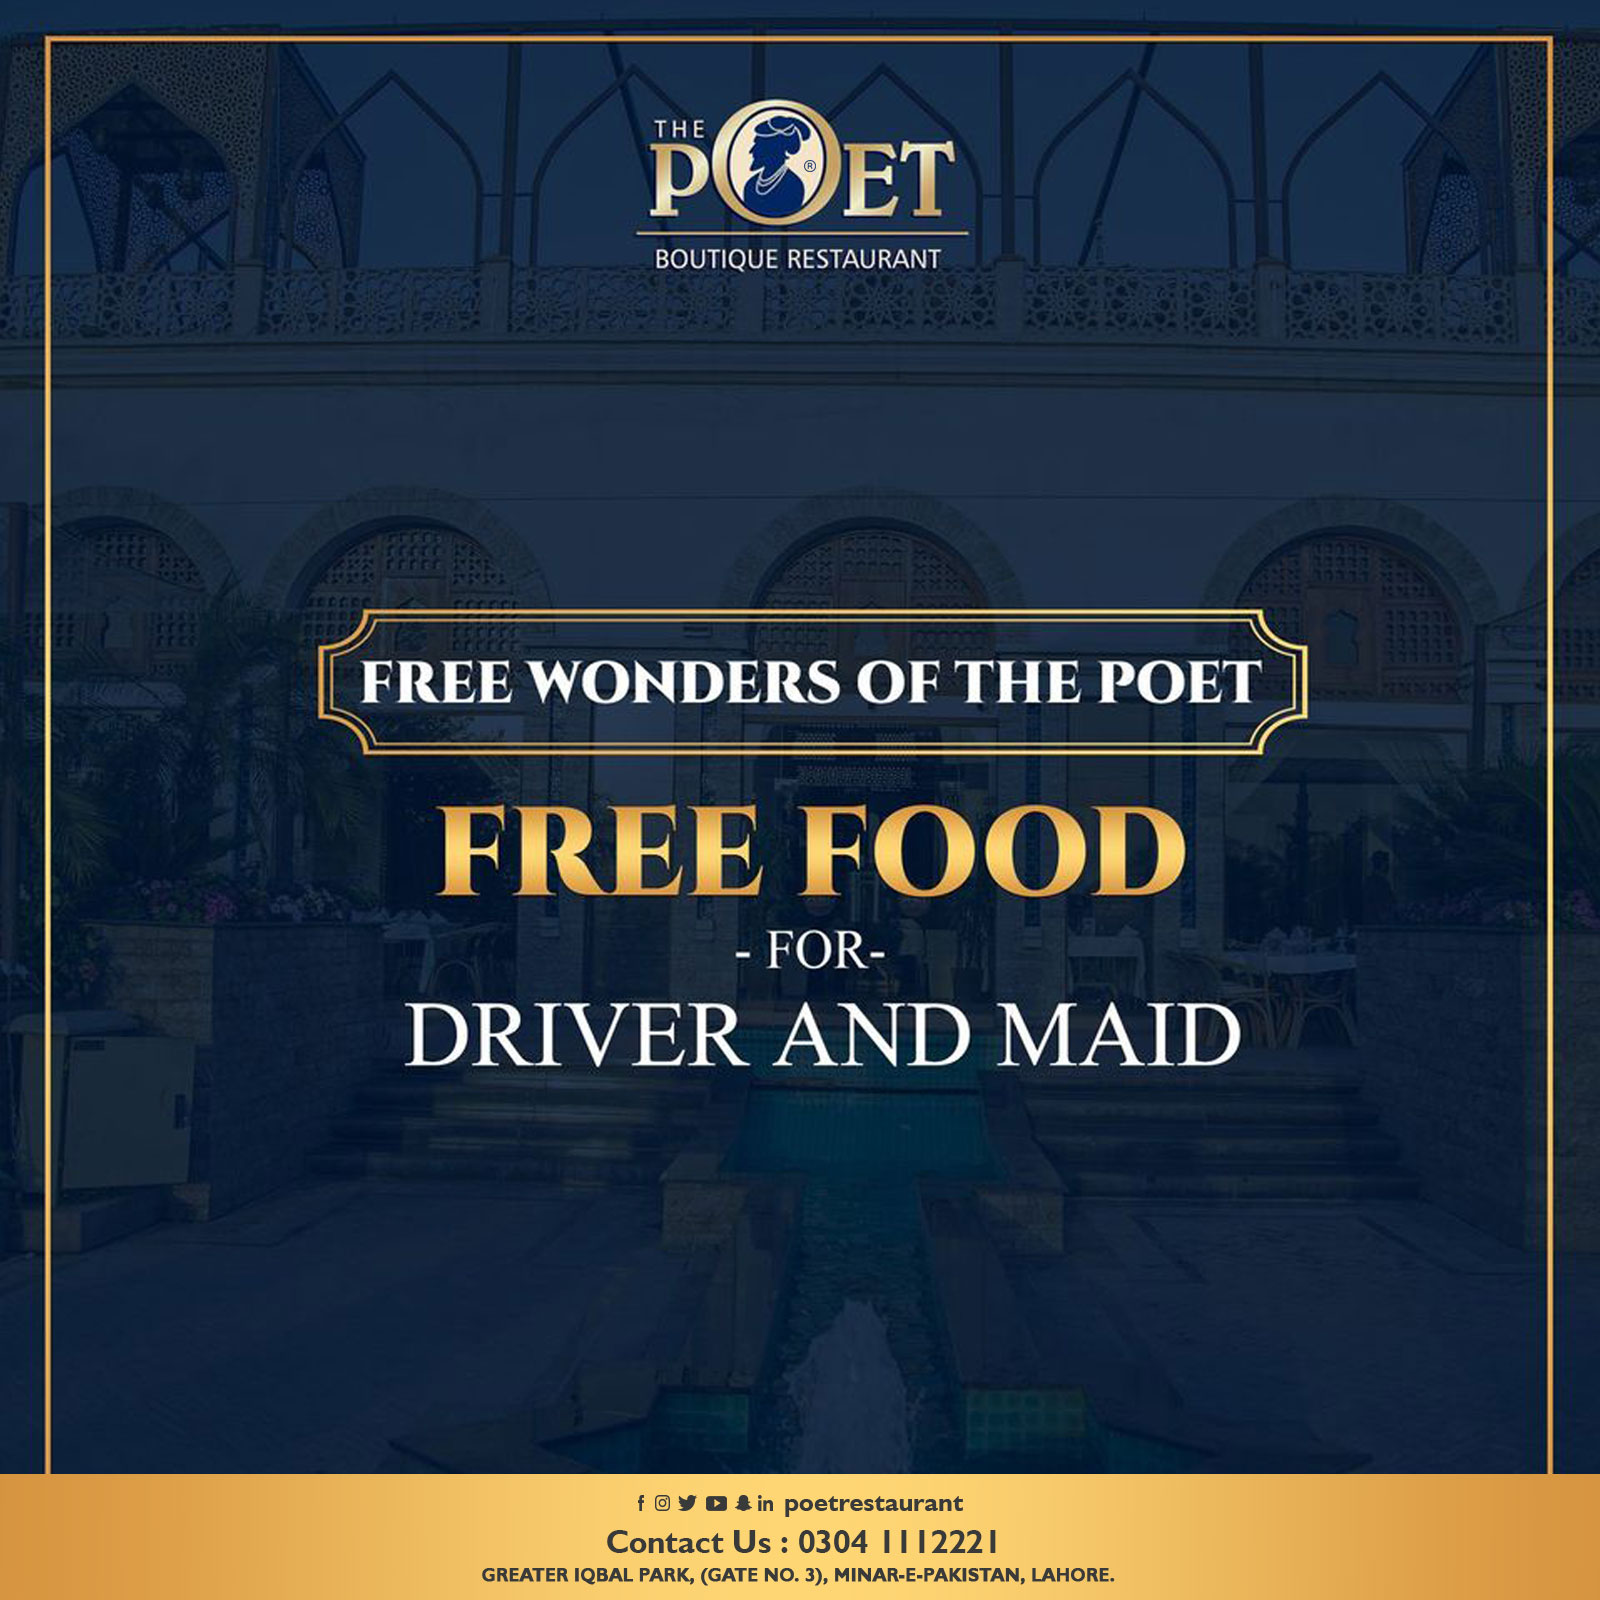 Free Food for Driver and Maid at The Poet Restaurant